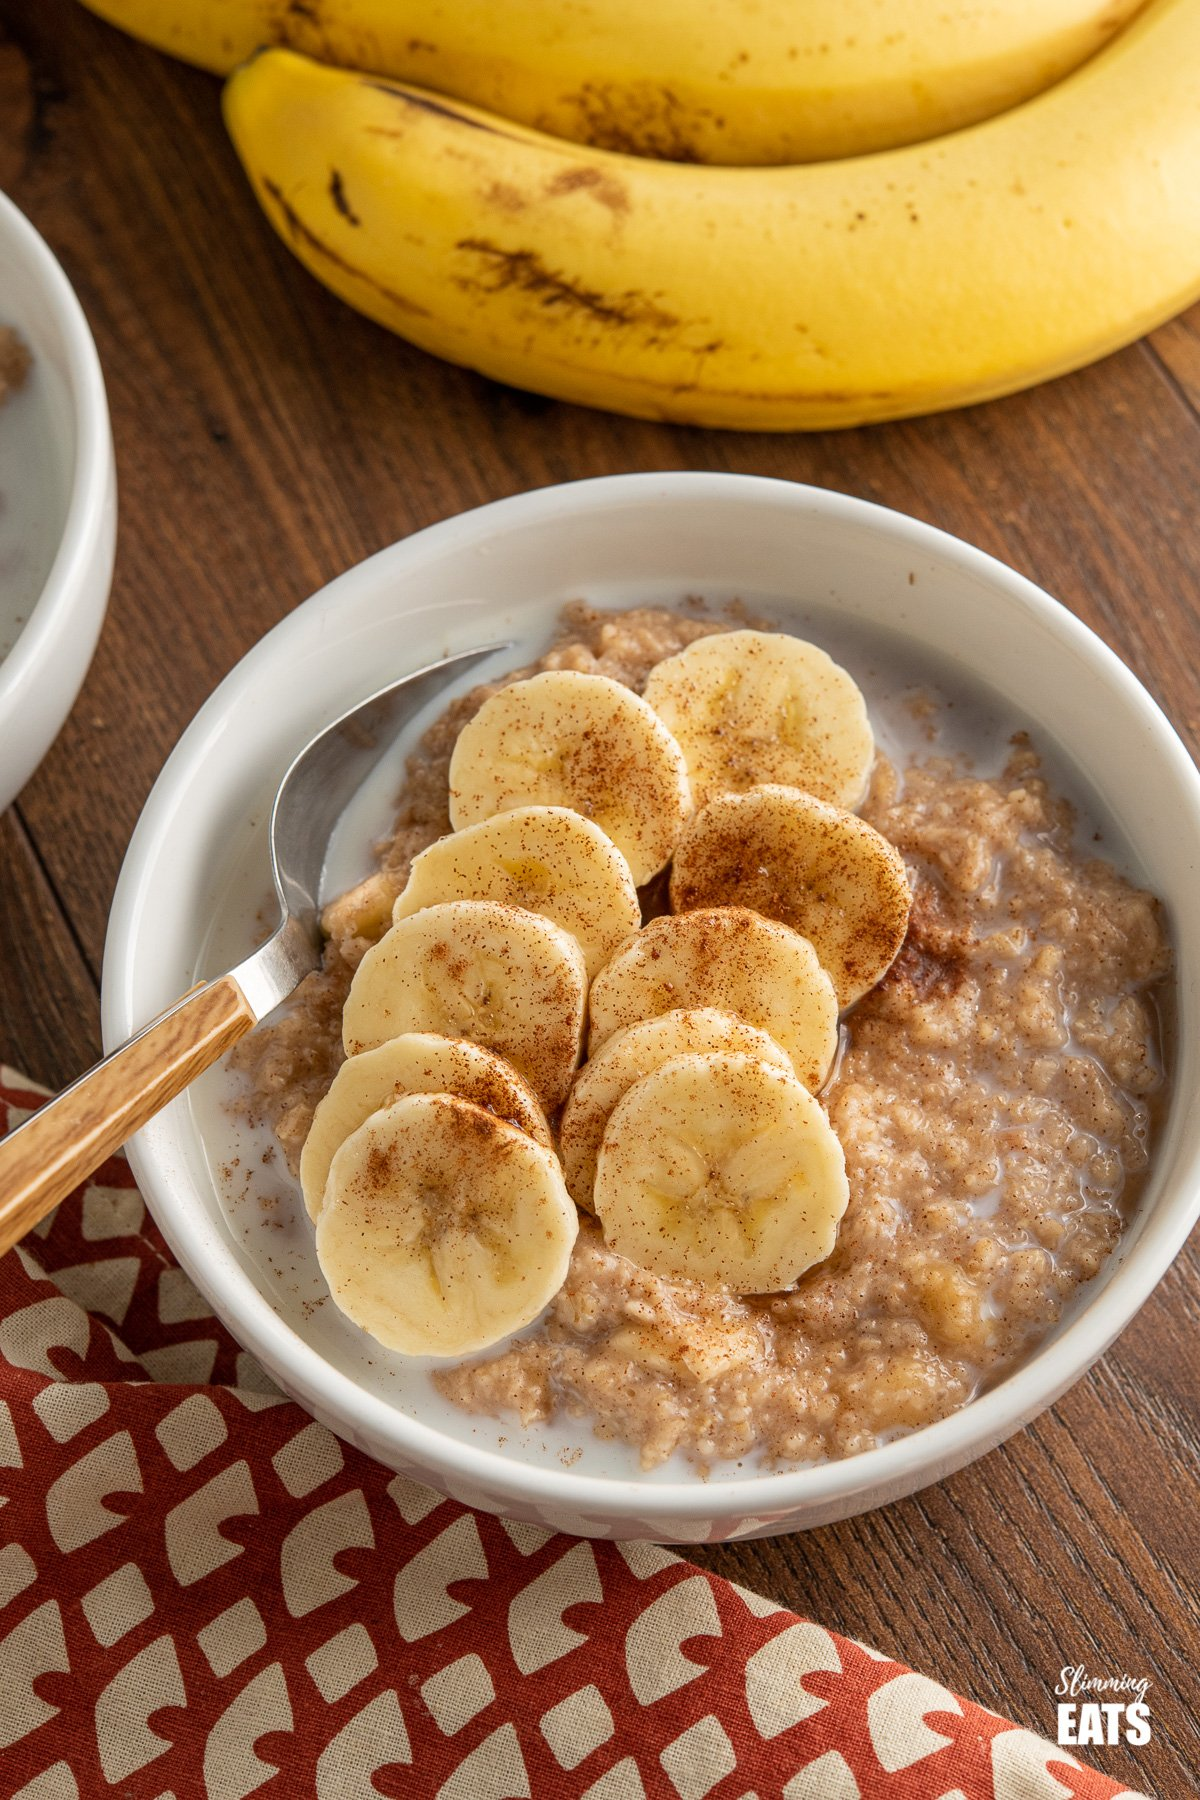 Oatmeal with Banana, Cinnamon and Maple Syrup in white bowl with wooden handled spoon and bananas in background